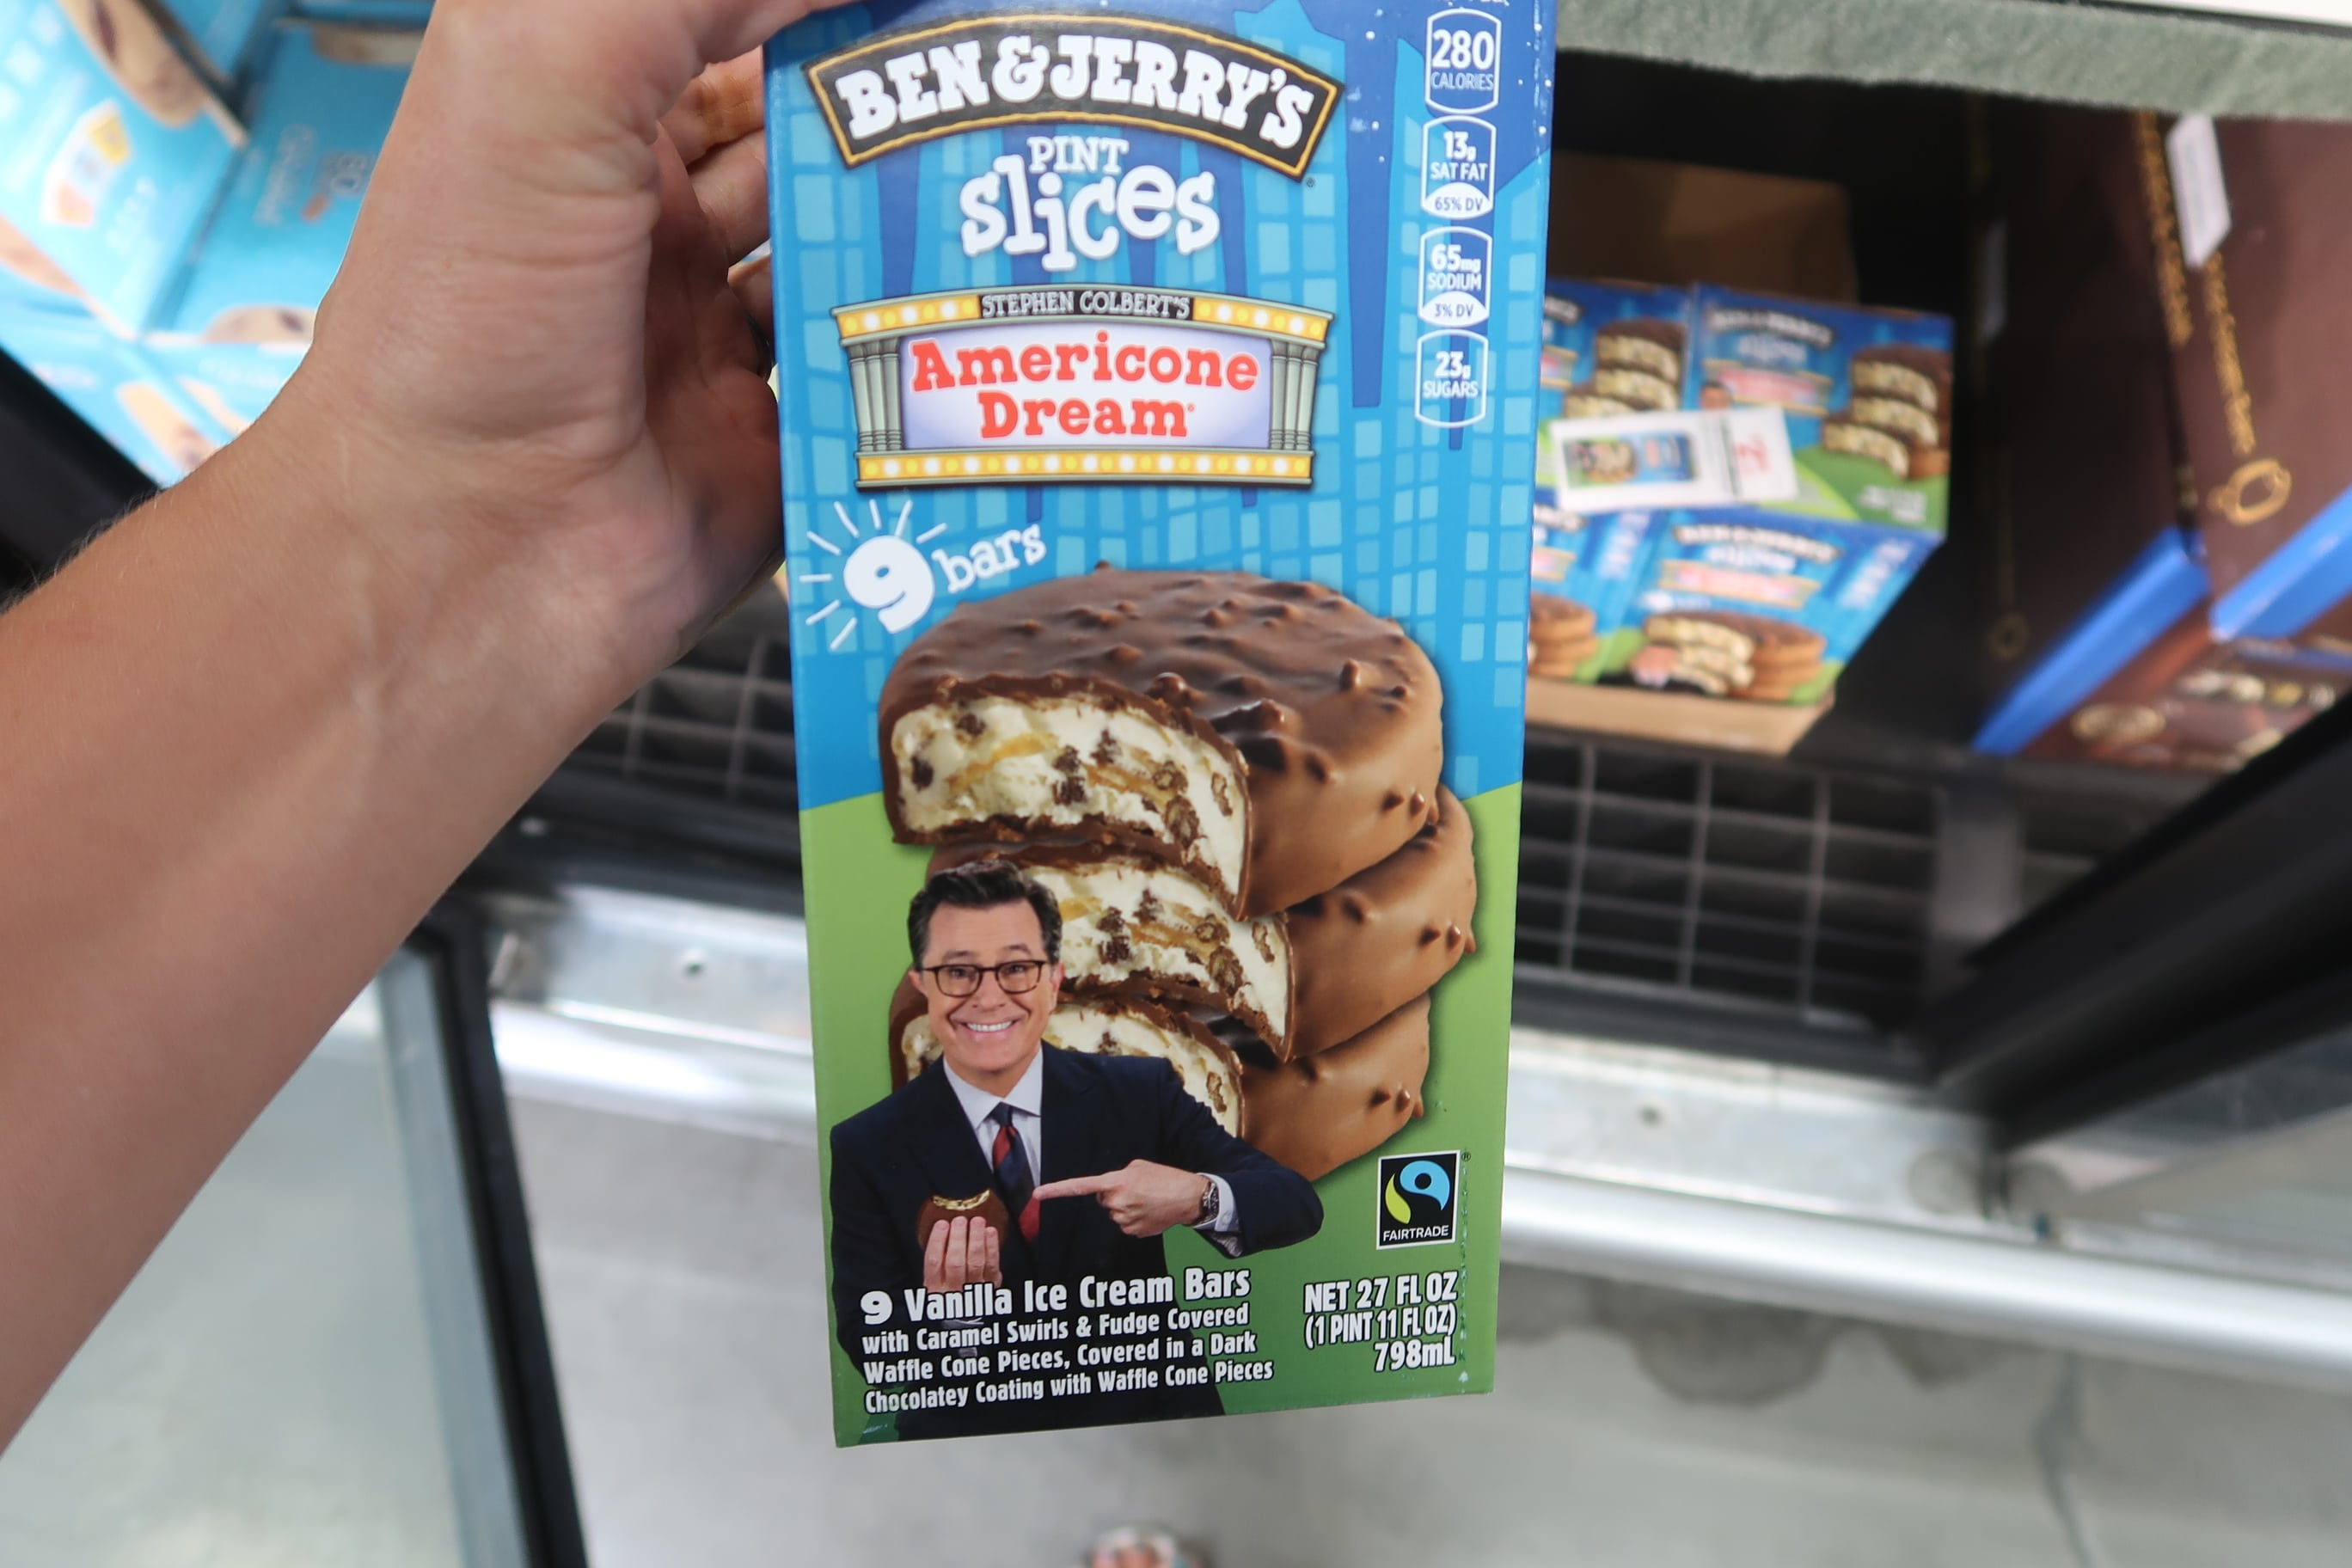 Ben Jerry S Pint Slices Only 1 68 Print Coupon Now My Bjs Wholesale Club Americone dream, chocolate chip cookie dough, chocolate fudge brownie, and vanilla peanut butter cup. ben jerry s pint slices only 1 68